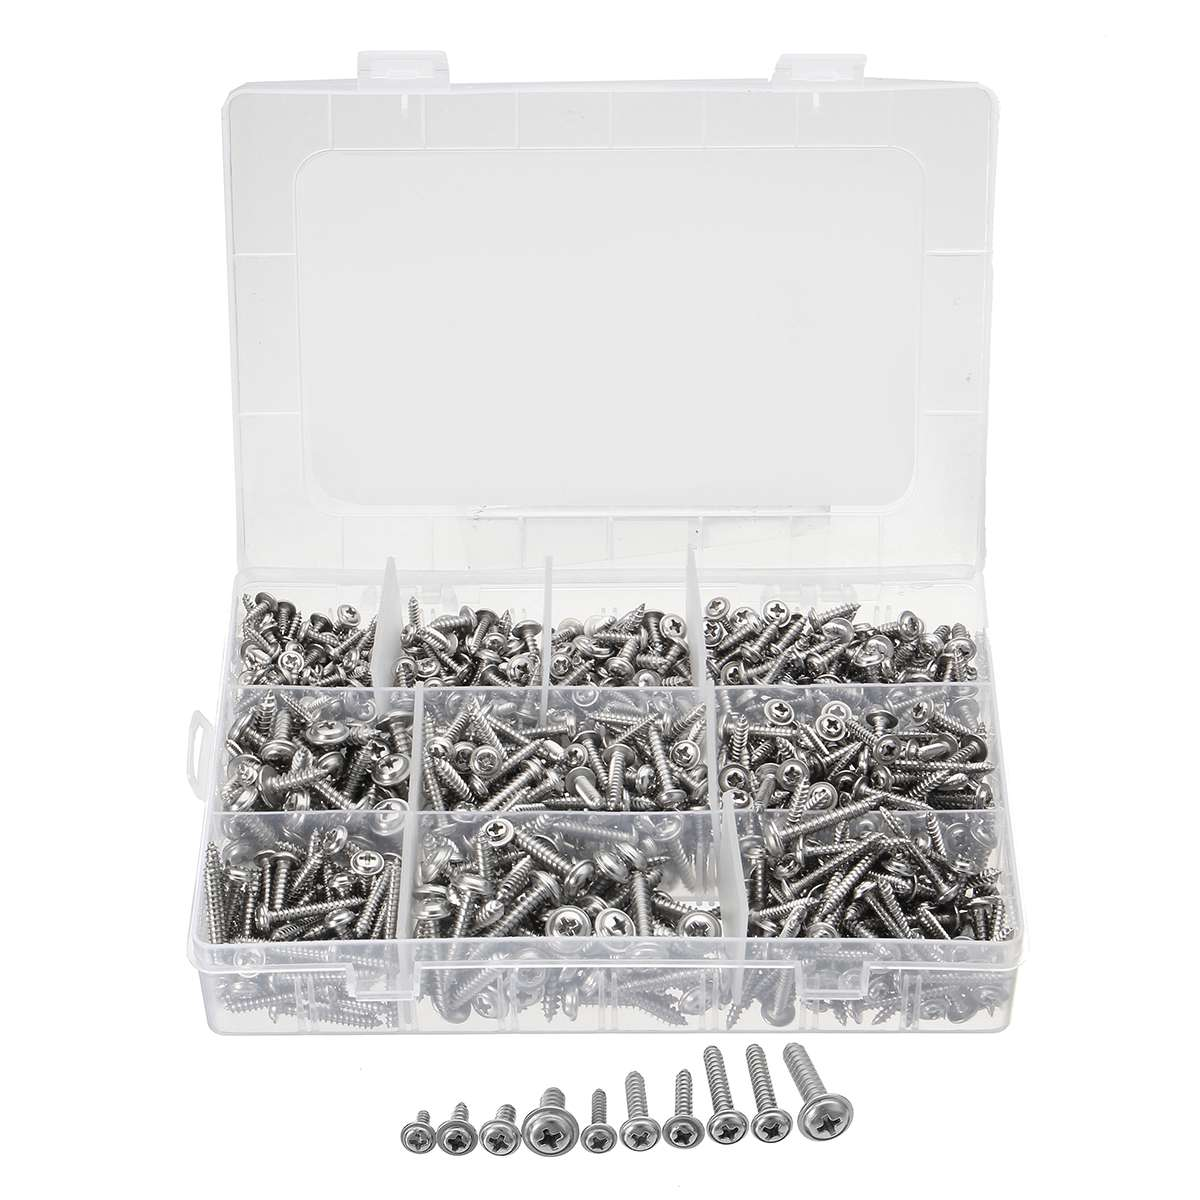 900PCS Stainless Steel Screws Kits High strength Self-Tapping Screws Assortment Set For Wood Furniture  4g 6g 8g 10g900PCS Stainless Steel Screws Kits High strength Self-Tapping Screws Assortment Set For Wood Furniture  4g 6g 8g 10g